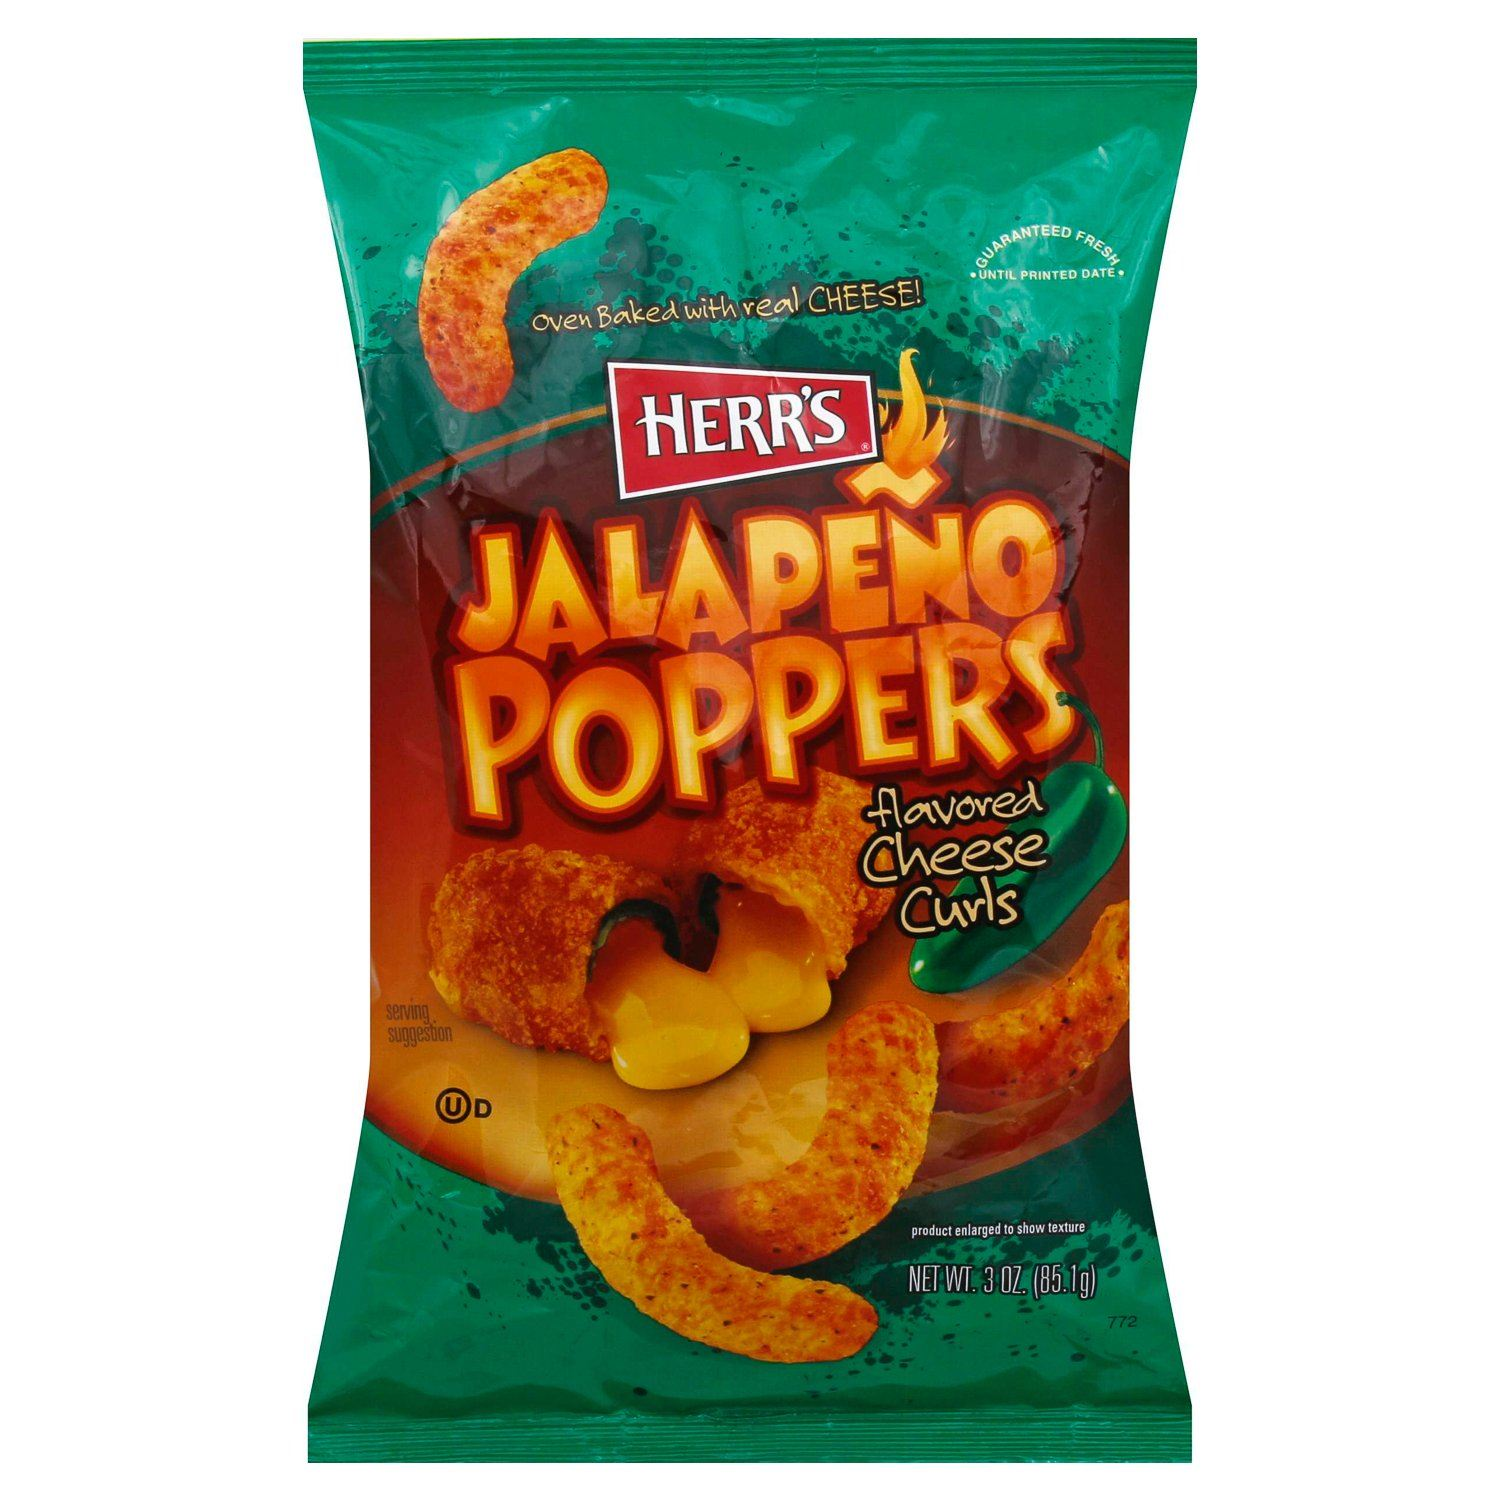 Herr's Flavored Cheese Curls Herr's Jalapeno Poppers 3 Ounce